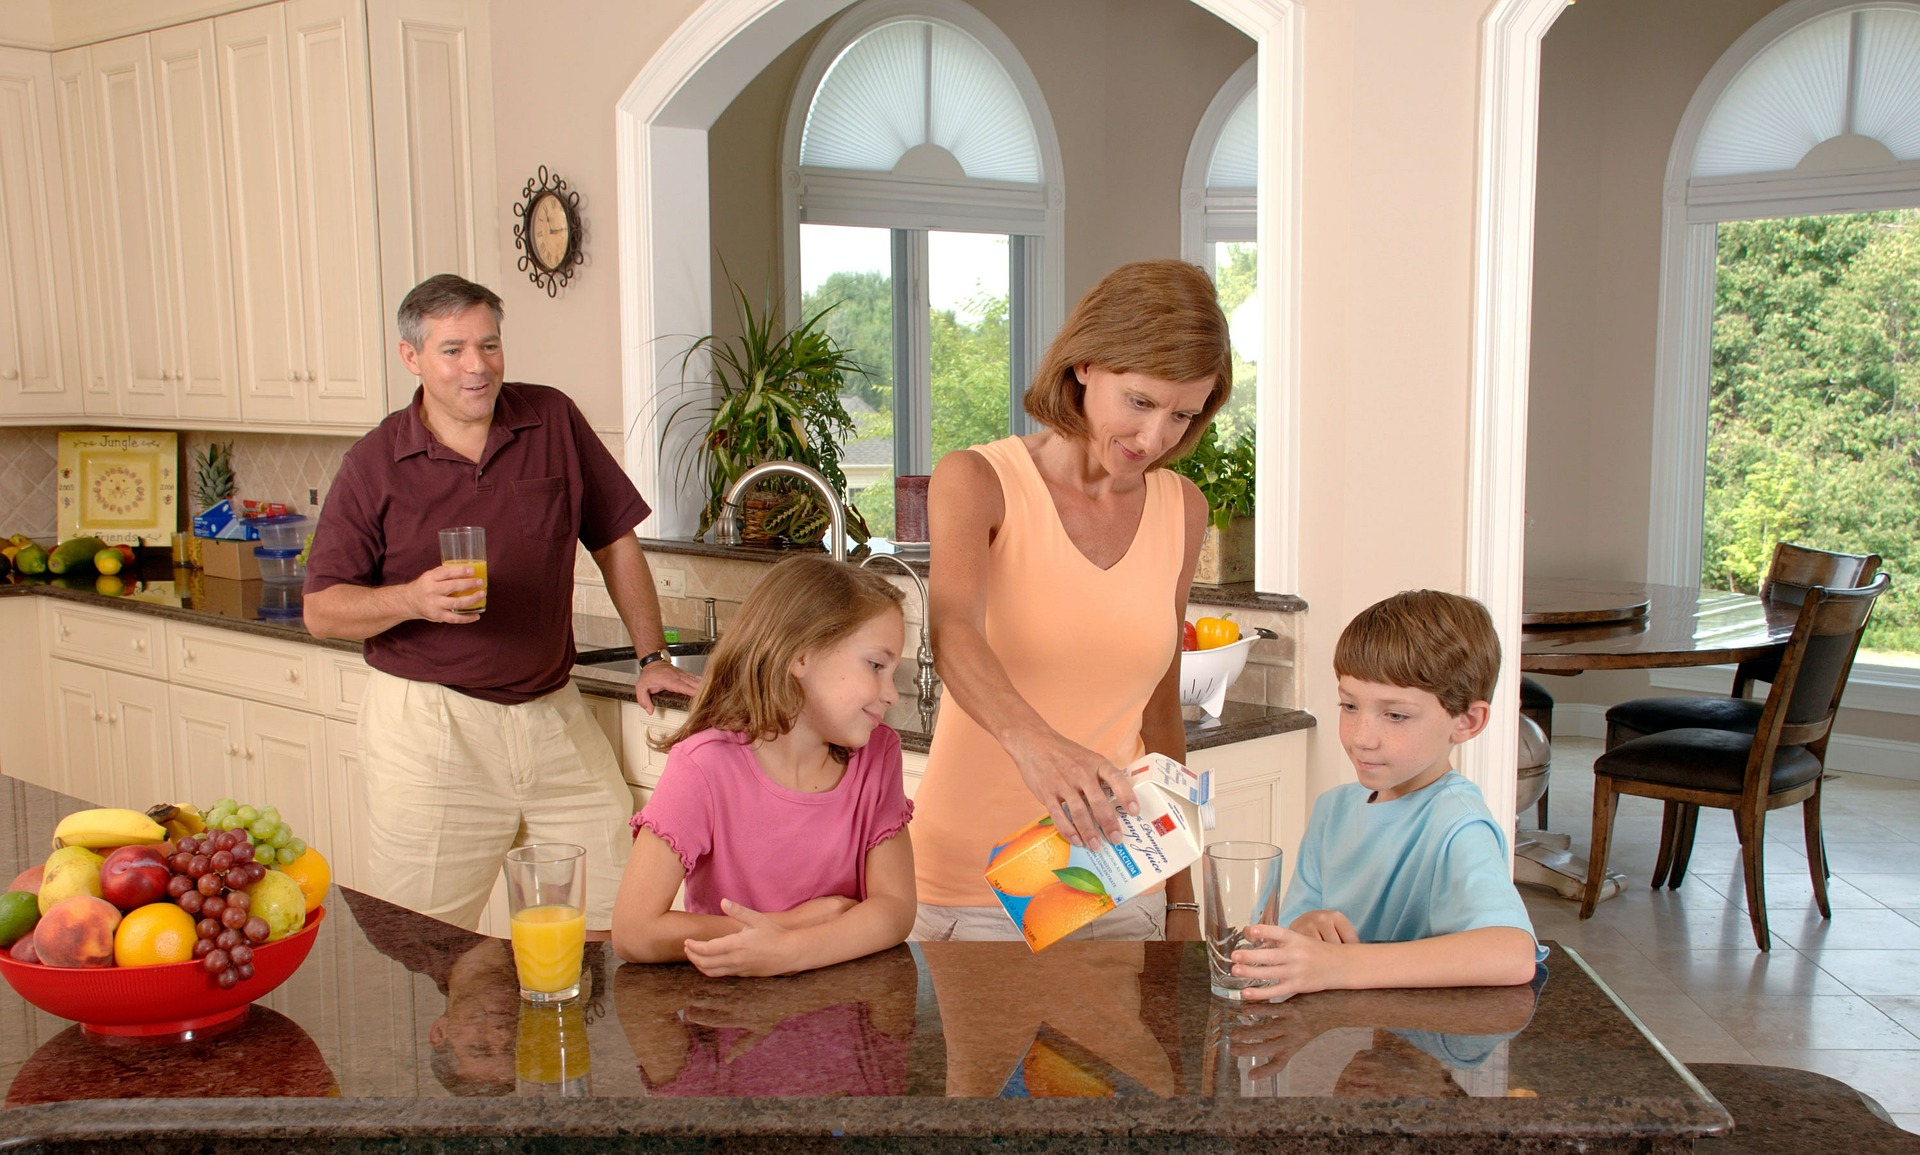 House Clean With Kids